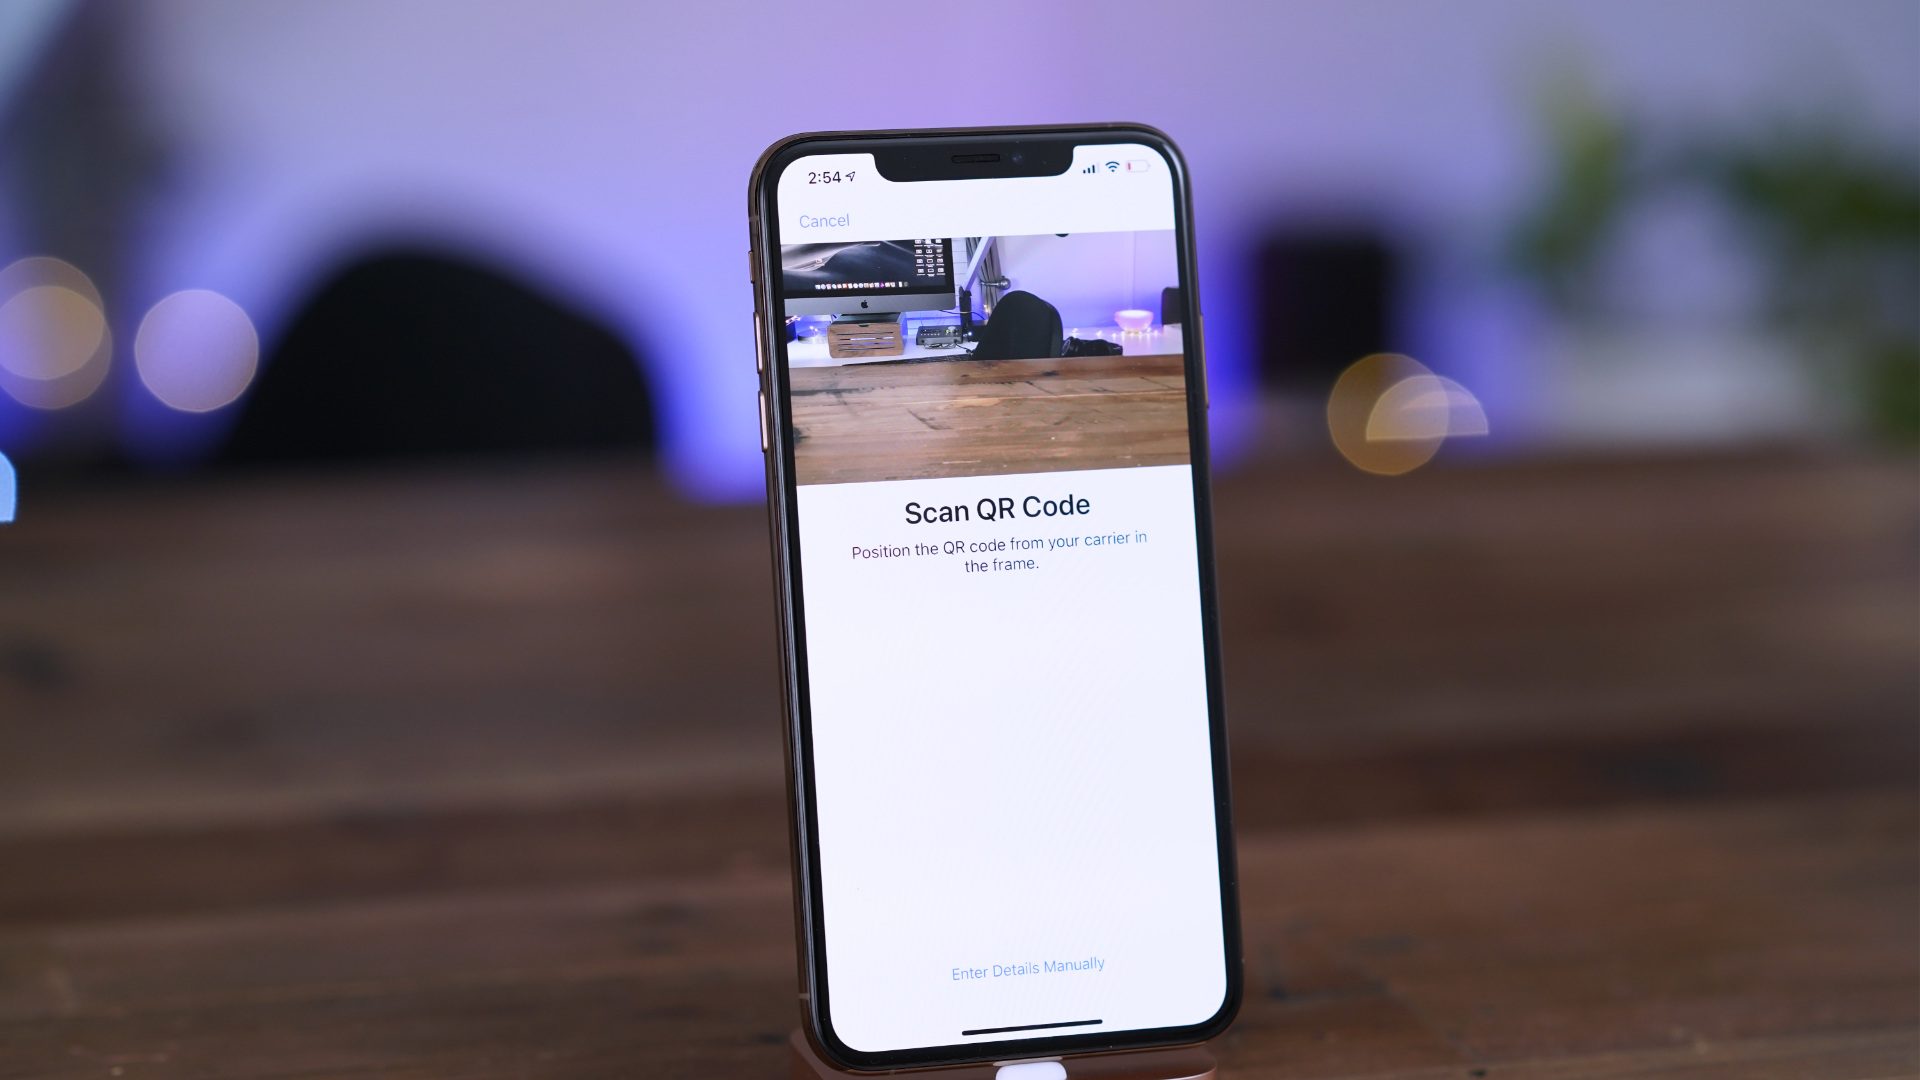 how to scan a qr code on iphone xr